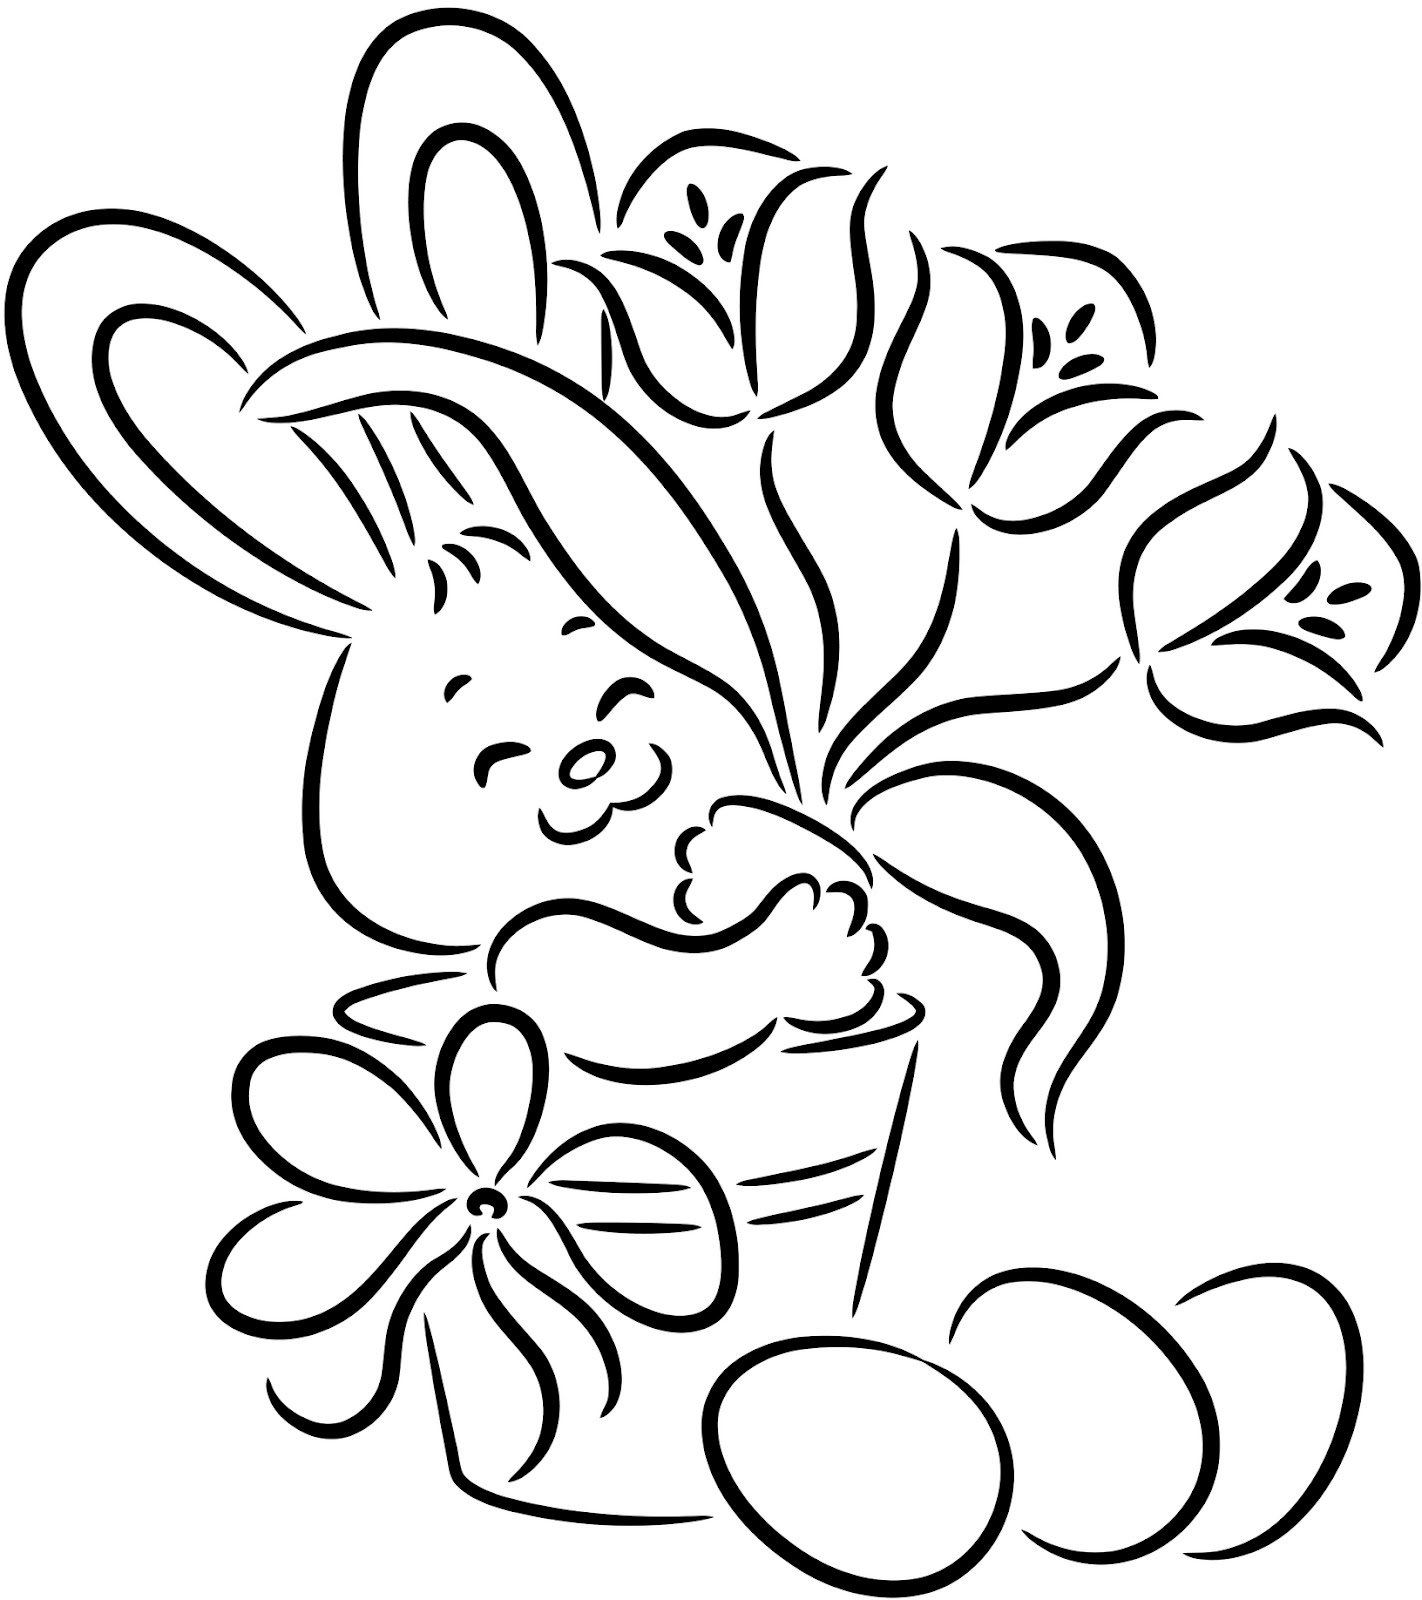 bunny color sheet bunny coloring pages best coloring pages for kids sheet bunny color